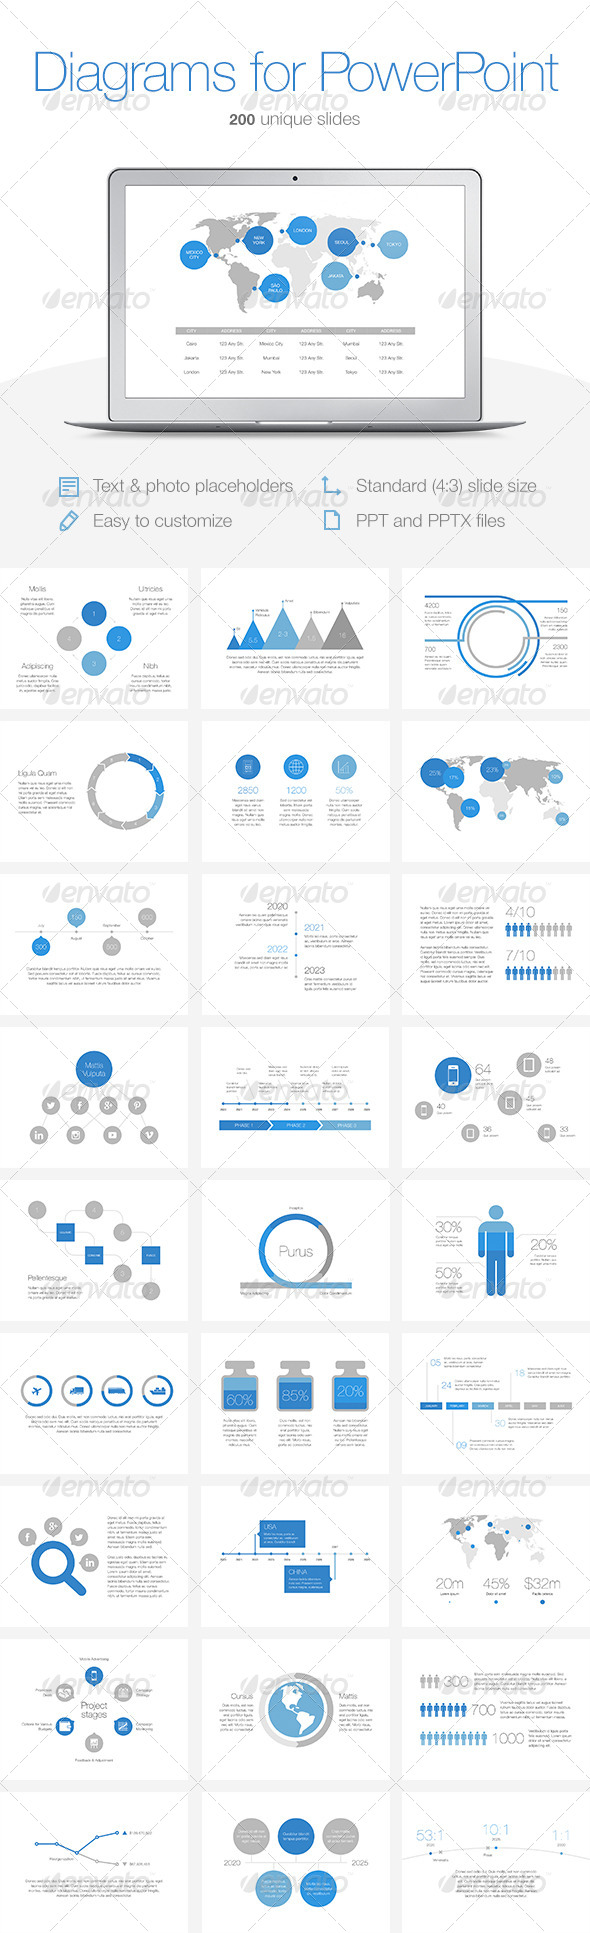 GraphicRiver Diagrams for PowerPoint 7819833